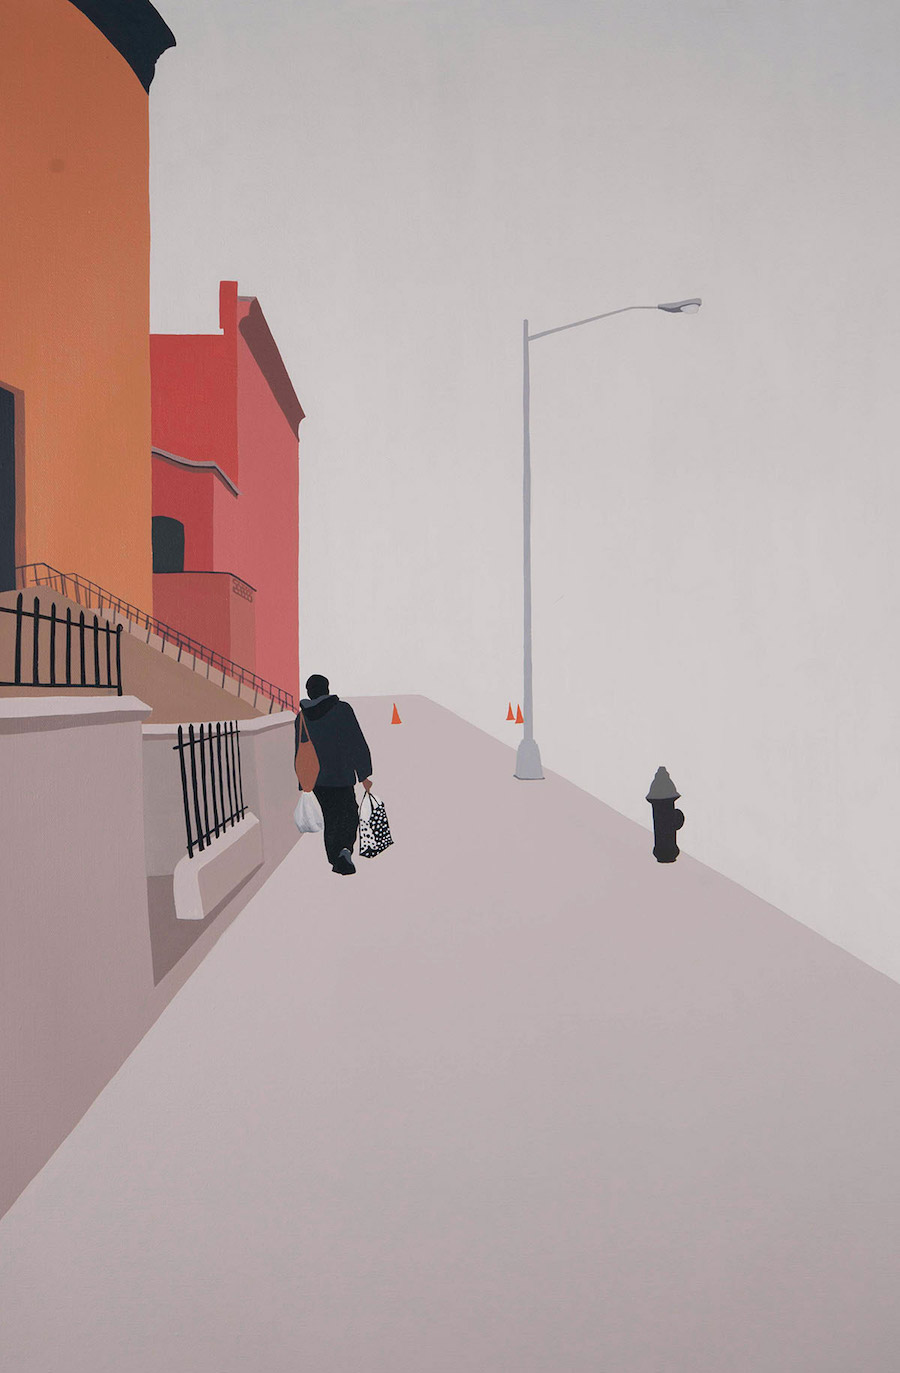 Mysterious City Life Paintings